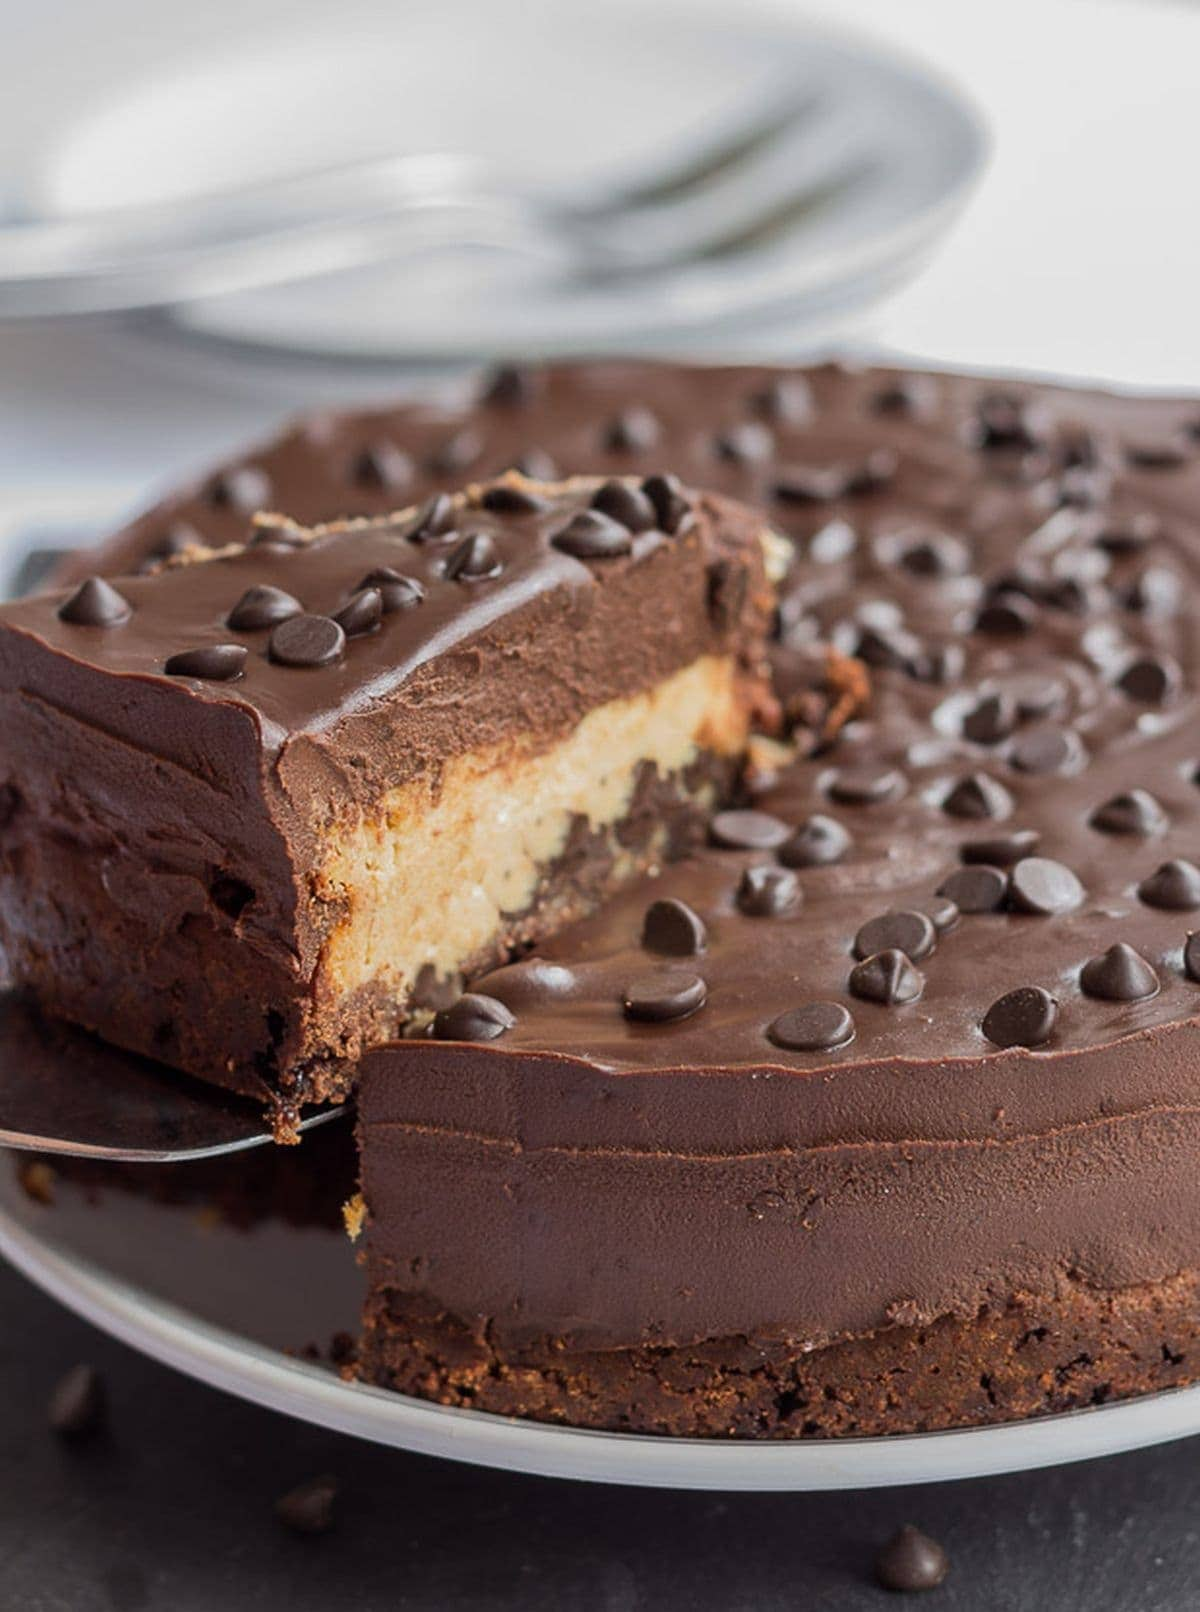 A slice of peanut butter chocolate chip cheesecake being lifted from the rest of the cheesecake.